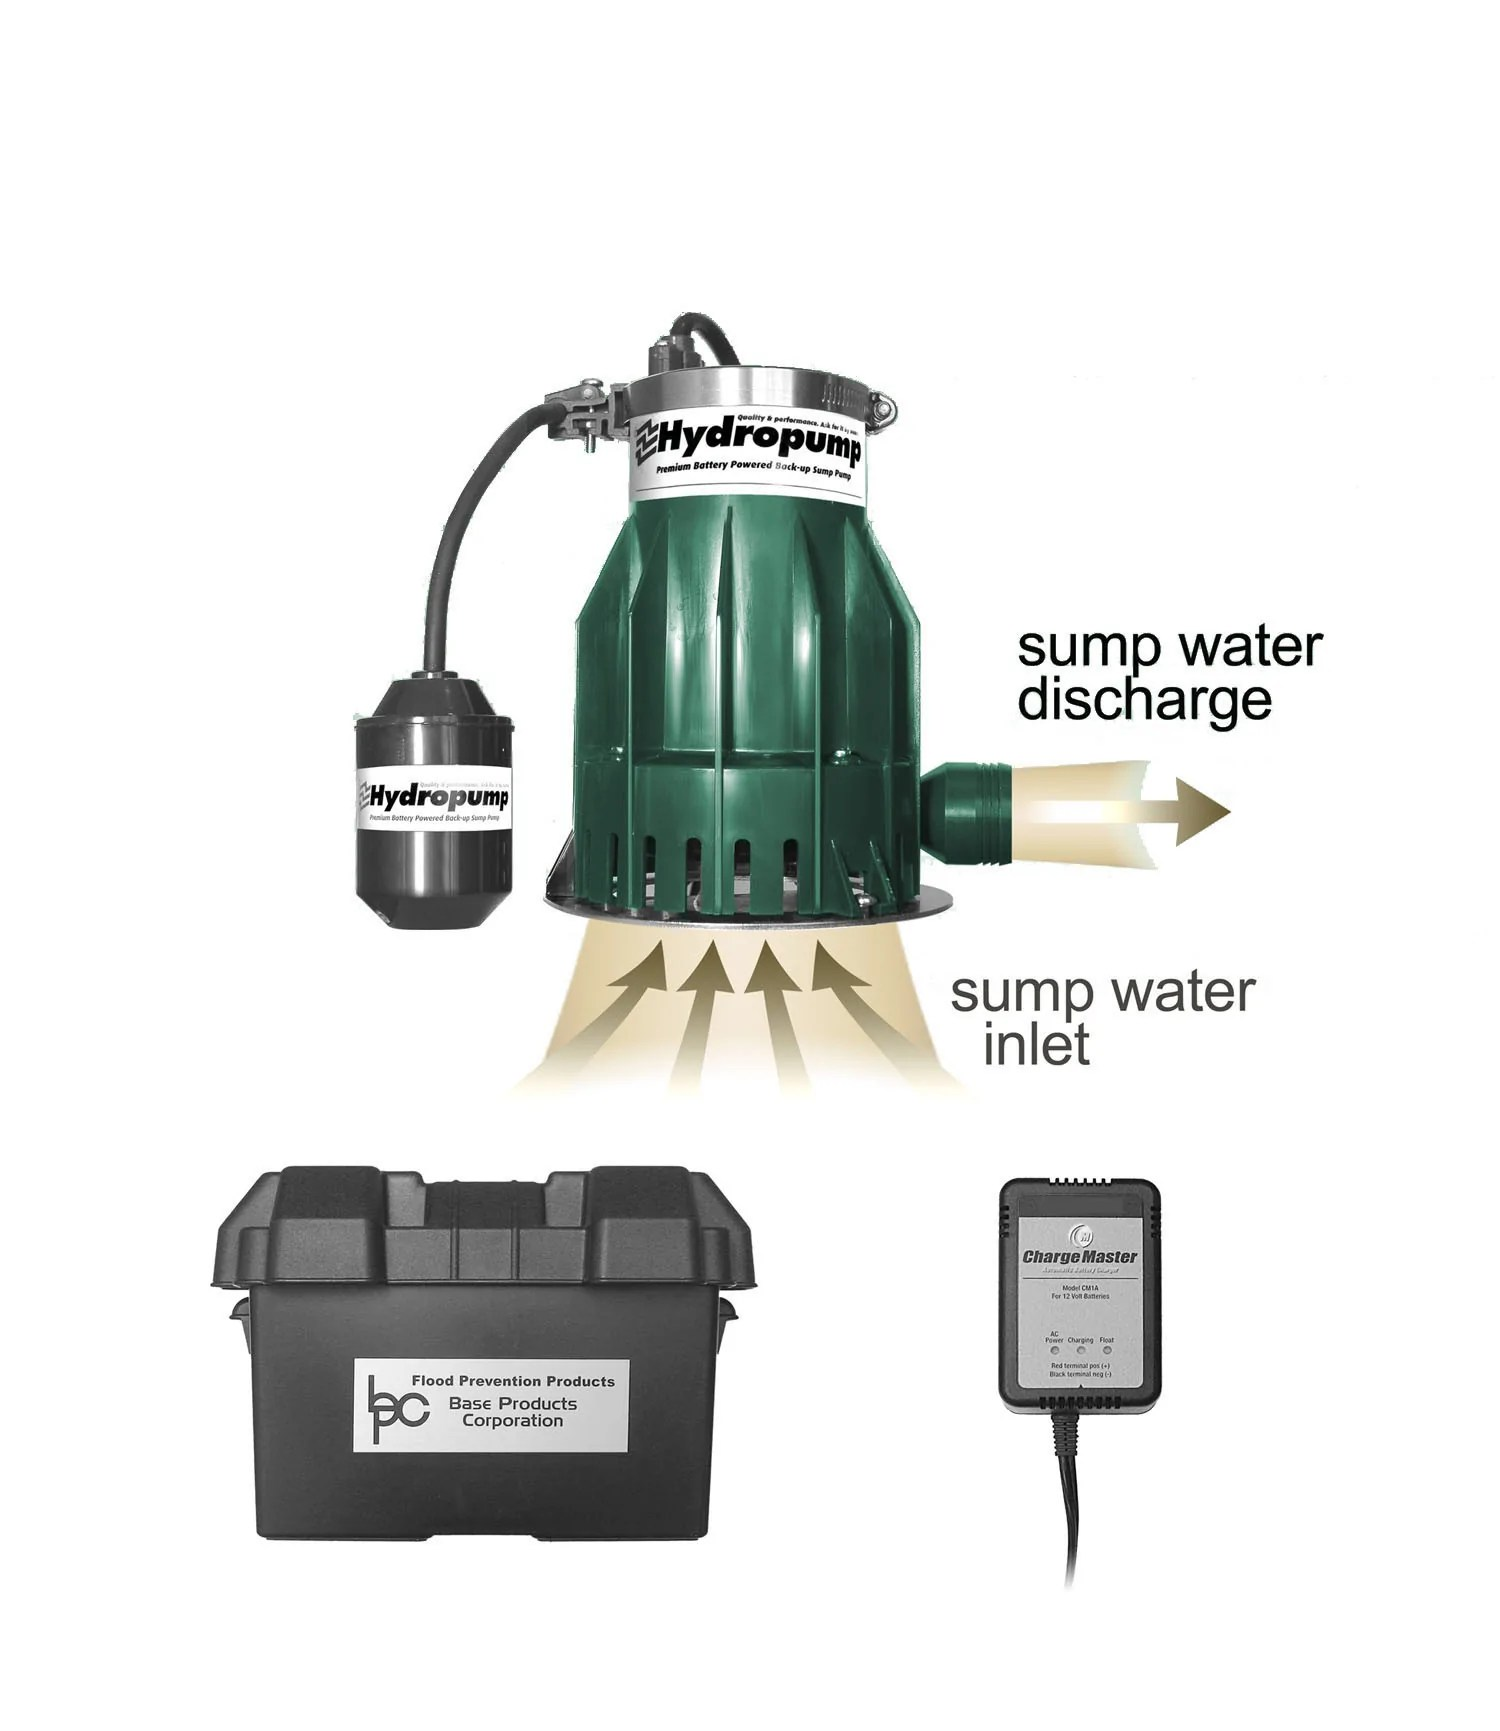 medium resolution of product image hydropump dh1800 sump pump with battery backup sump pump with battery backup sump pump with battery backup